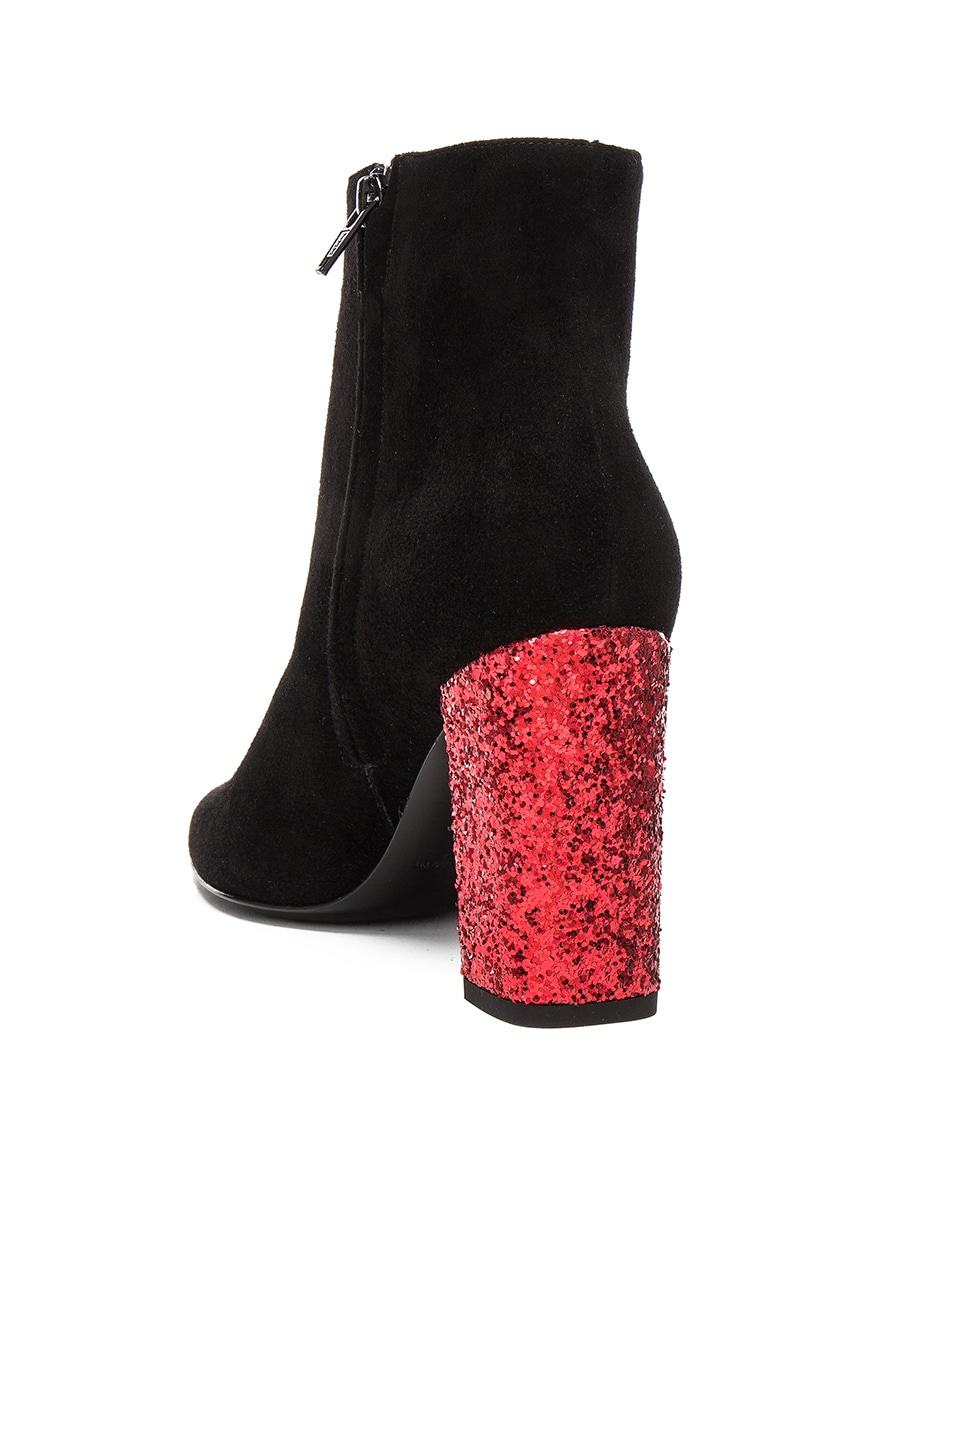 Image 3 of Saint Laurent Babies Suede & Glitter Boots in Black & Red